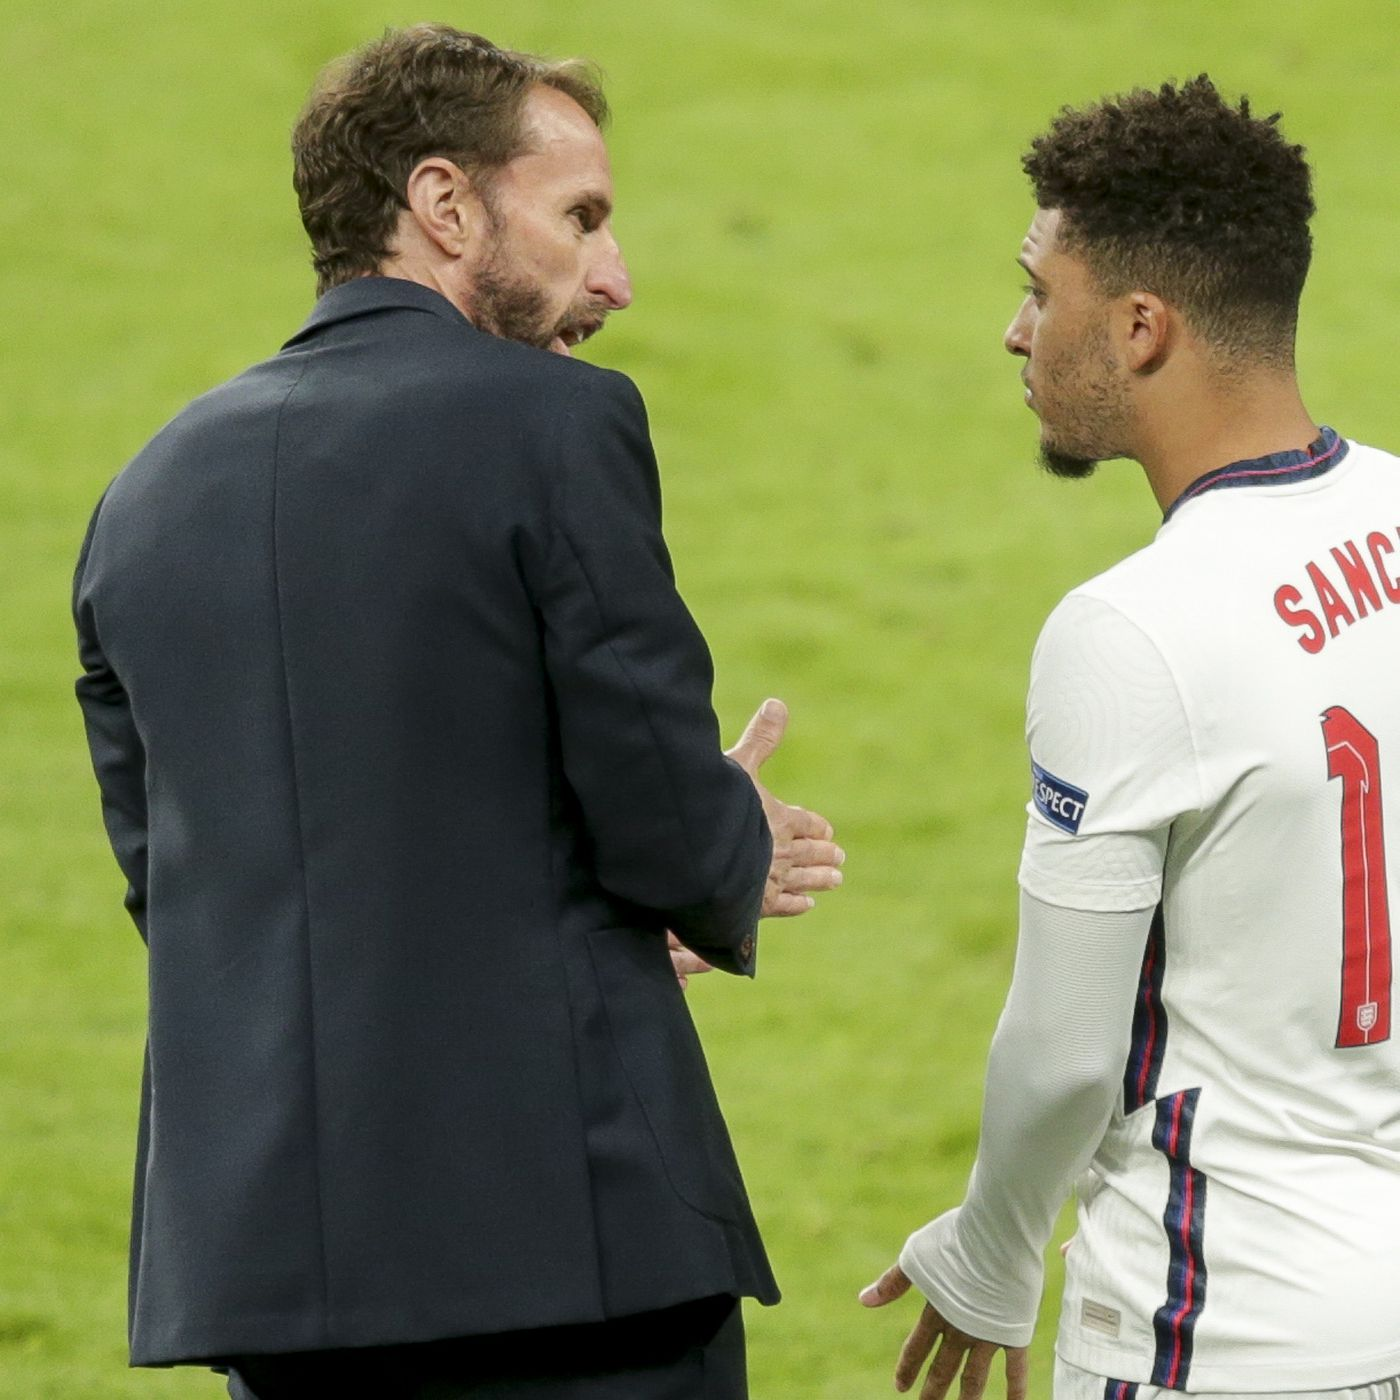 Lothar Matthaus perplexed at Jadon Sancho's bench role for England at the  Euros - Bavarian Football Works